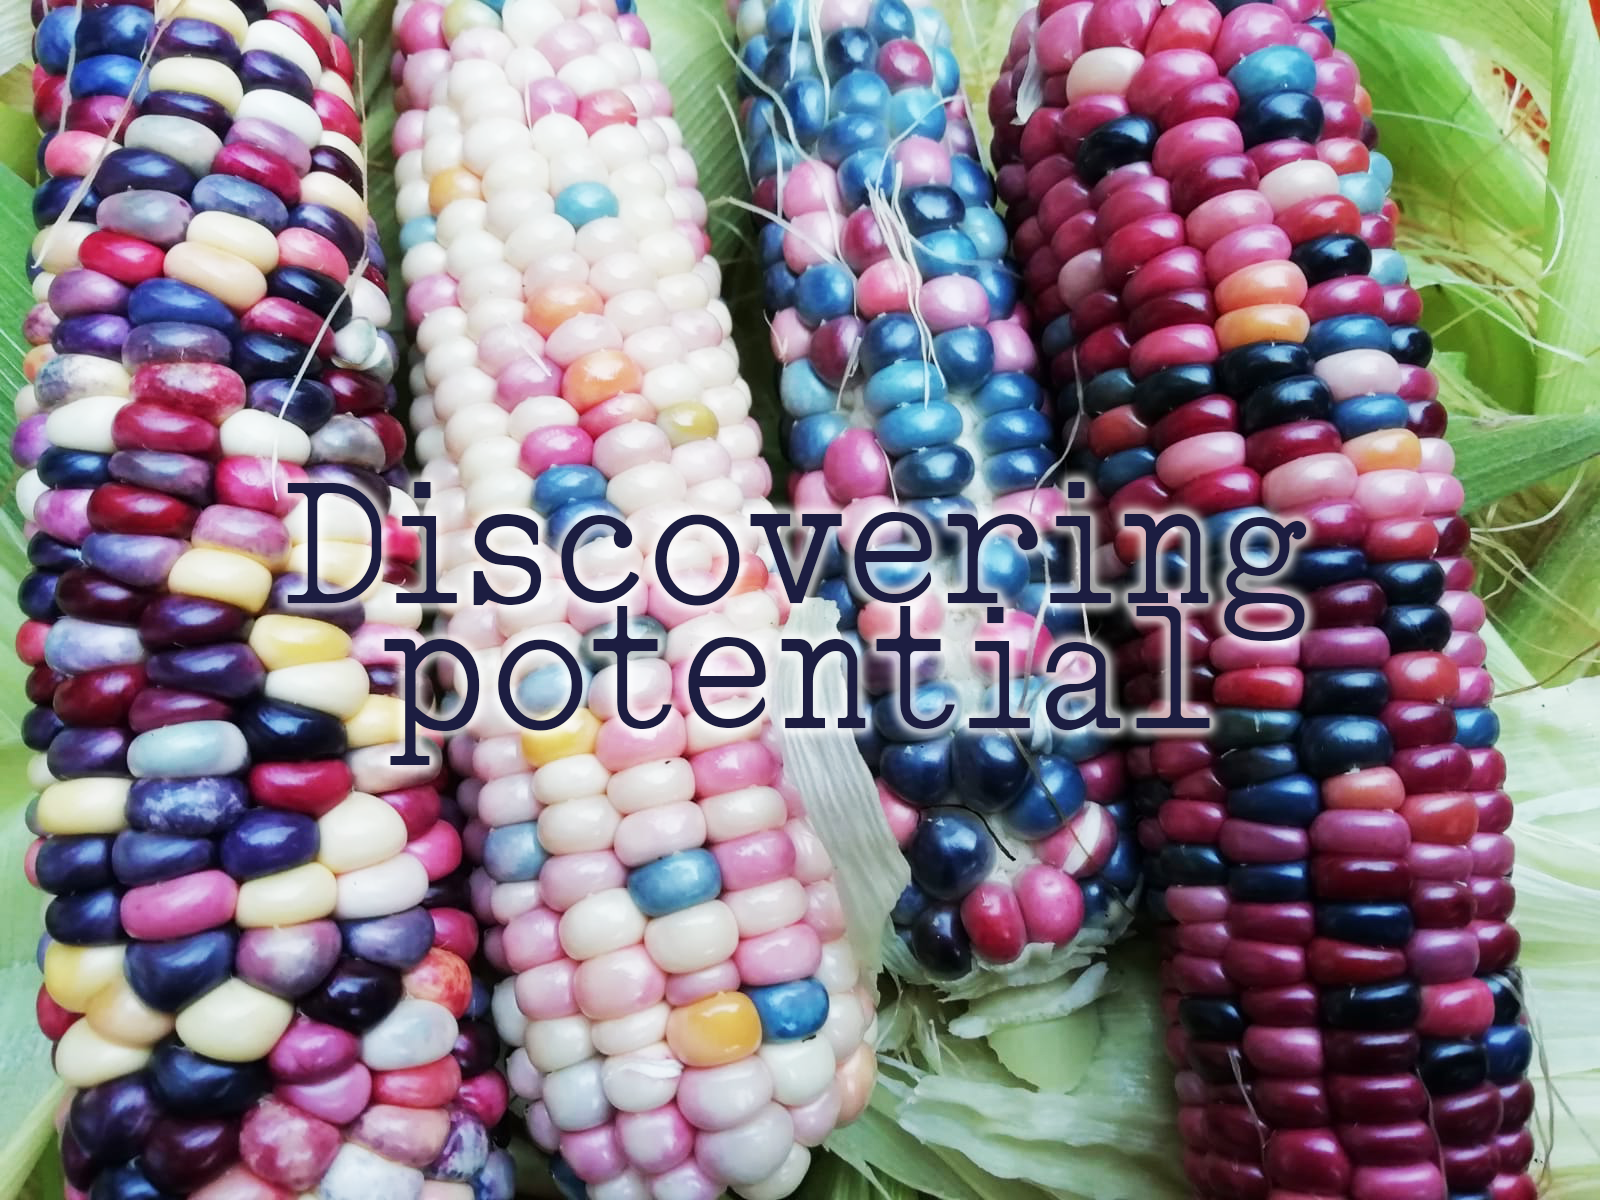 Discovering potential blog cover